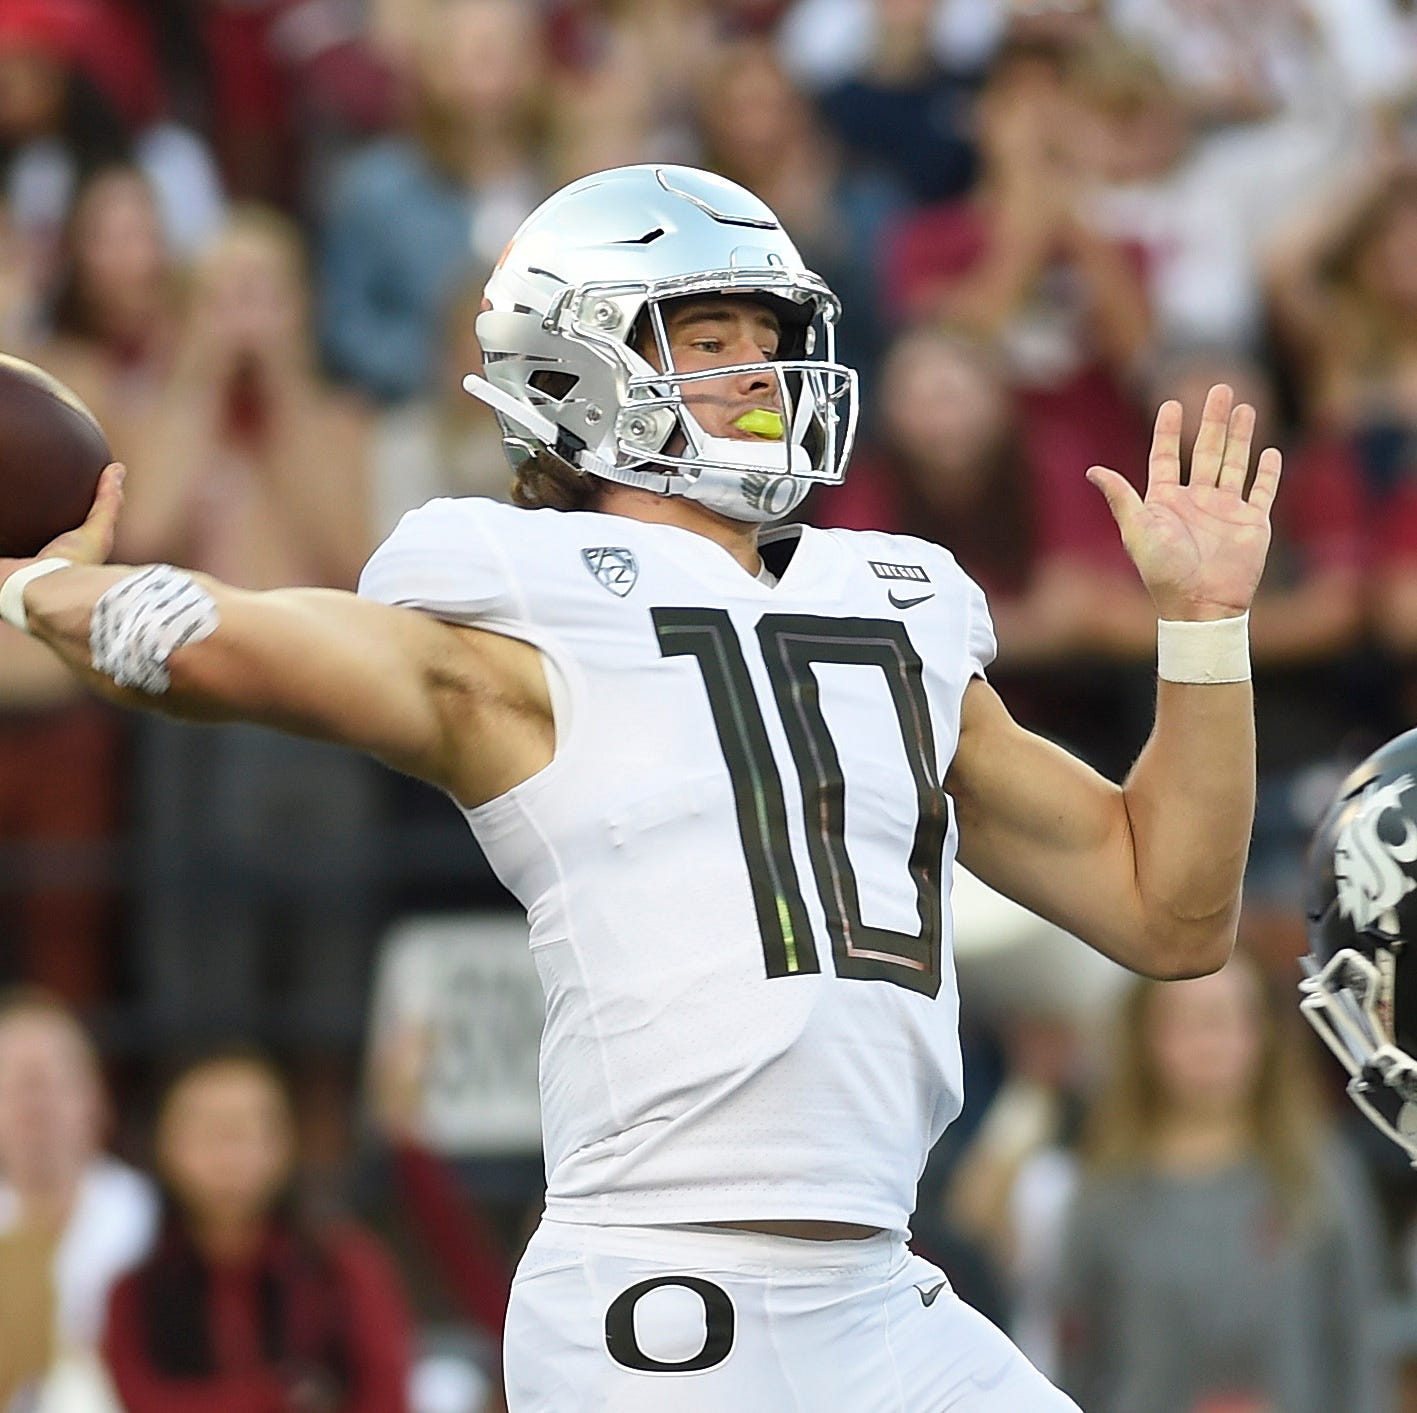 No. 12 Oregon Ducks lose at No. 25 Washington State